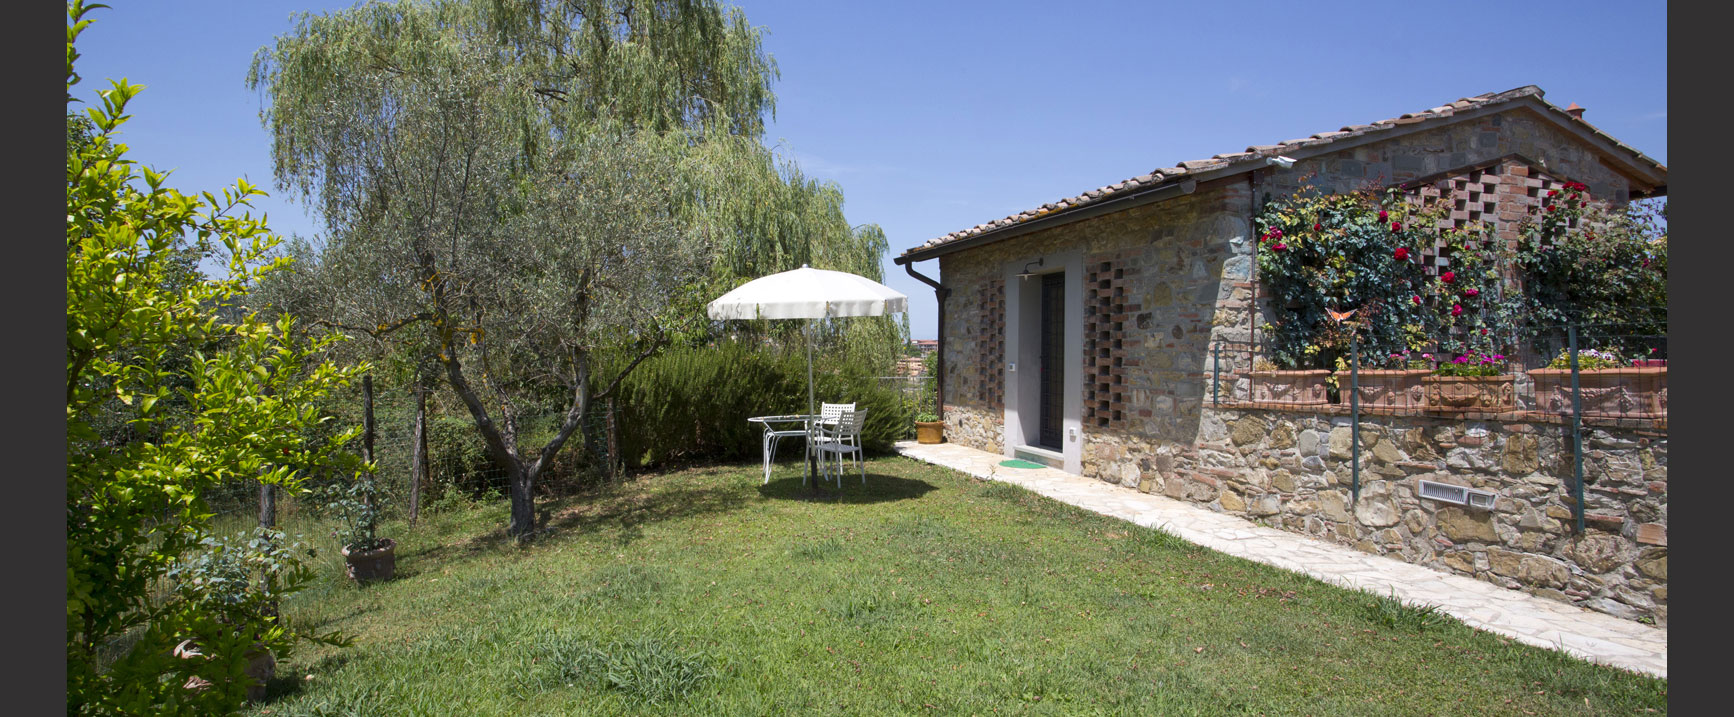 Casetta annex cottage studio 100 mt from the castle with for Planimetria di cottage calabash